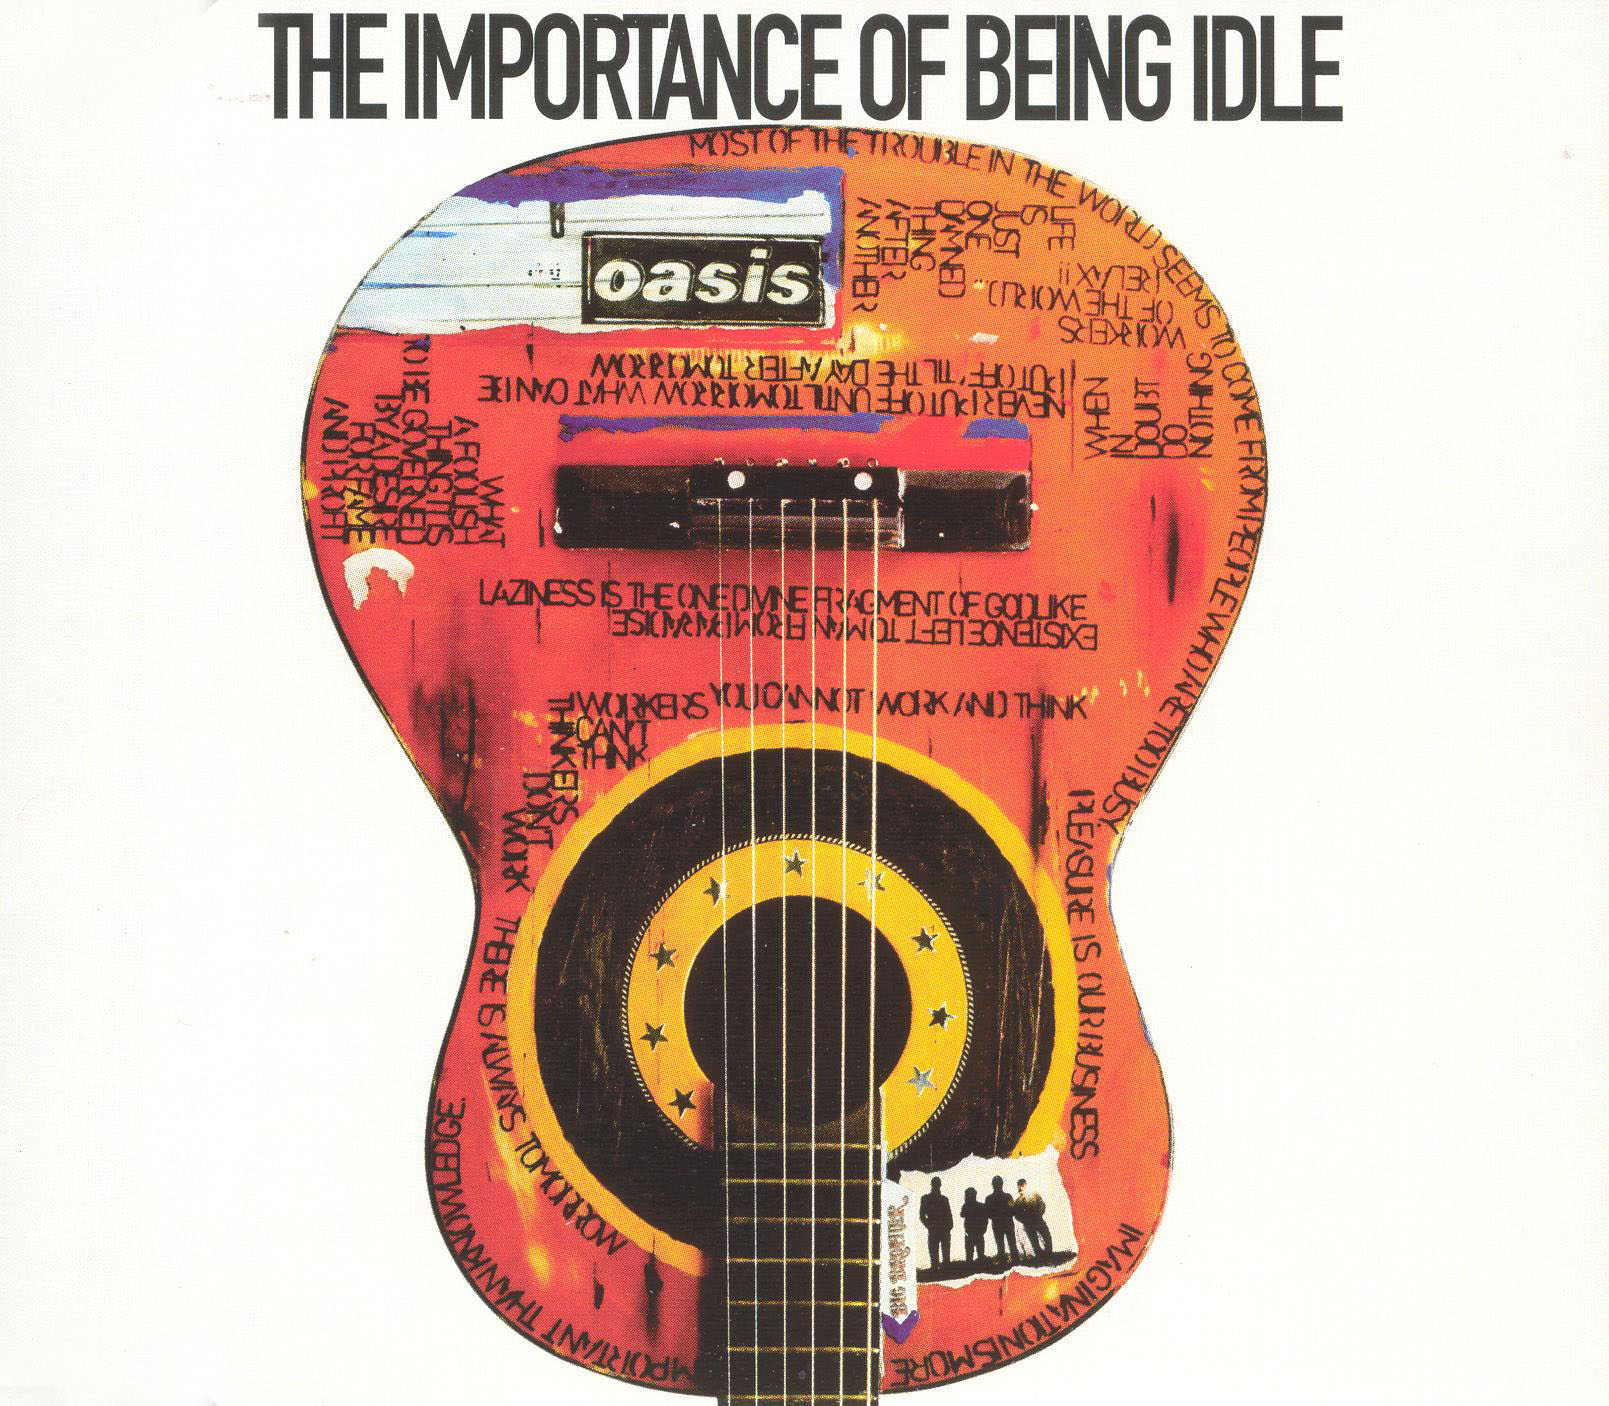 Oasis: Importance of Being Idle